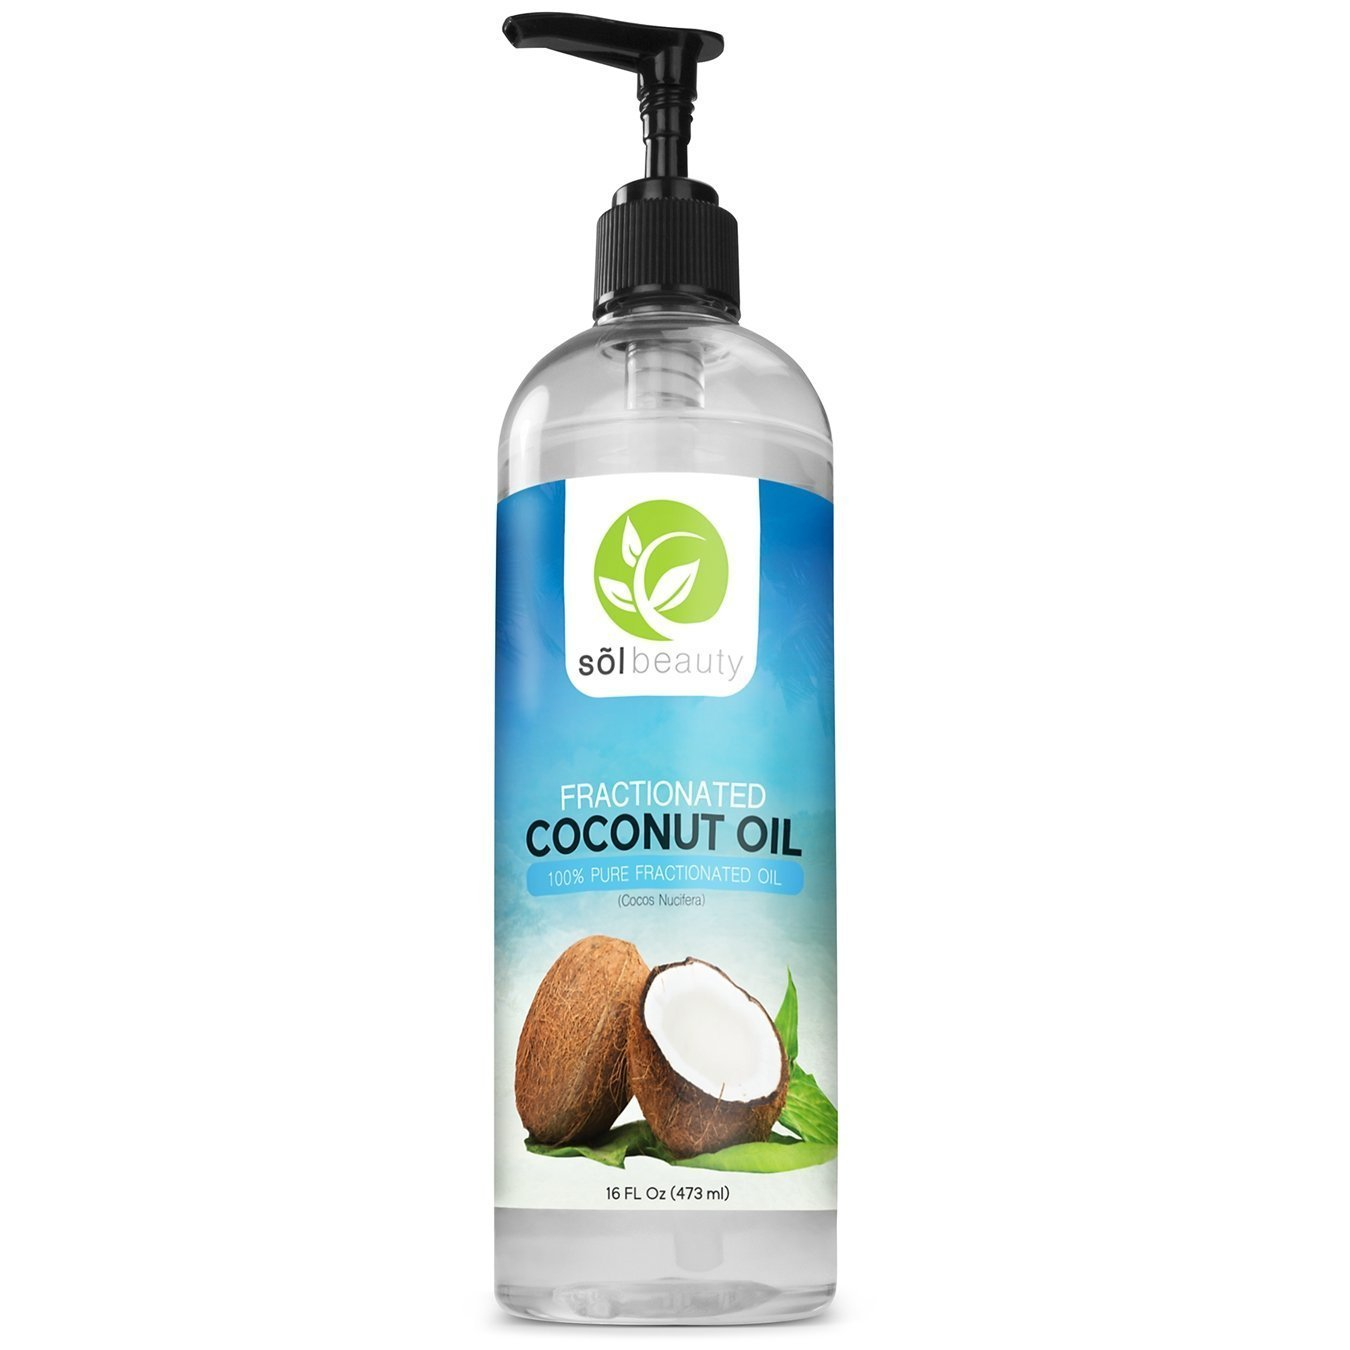 Sol Beauty Fractionated Coconut Oil For Aromatherapy Relaxing Massage Premium Therapeutic Grade - 16oz Cold Pressed Liquid - Moisturizer, Softener, Hair & Skin Care Benifits